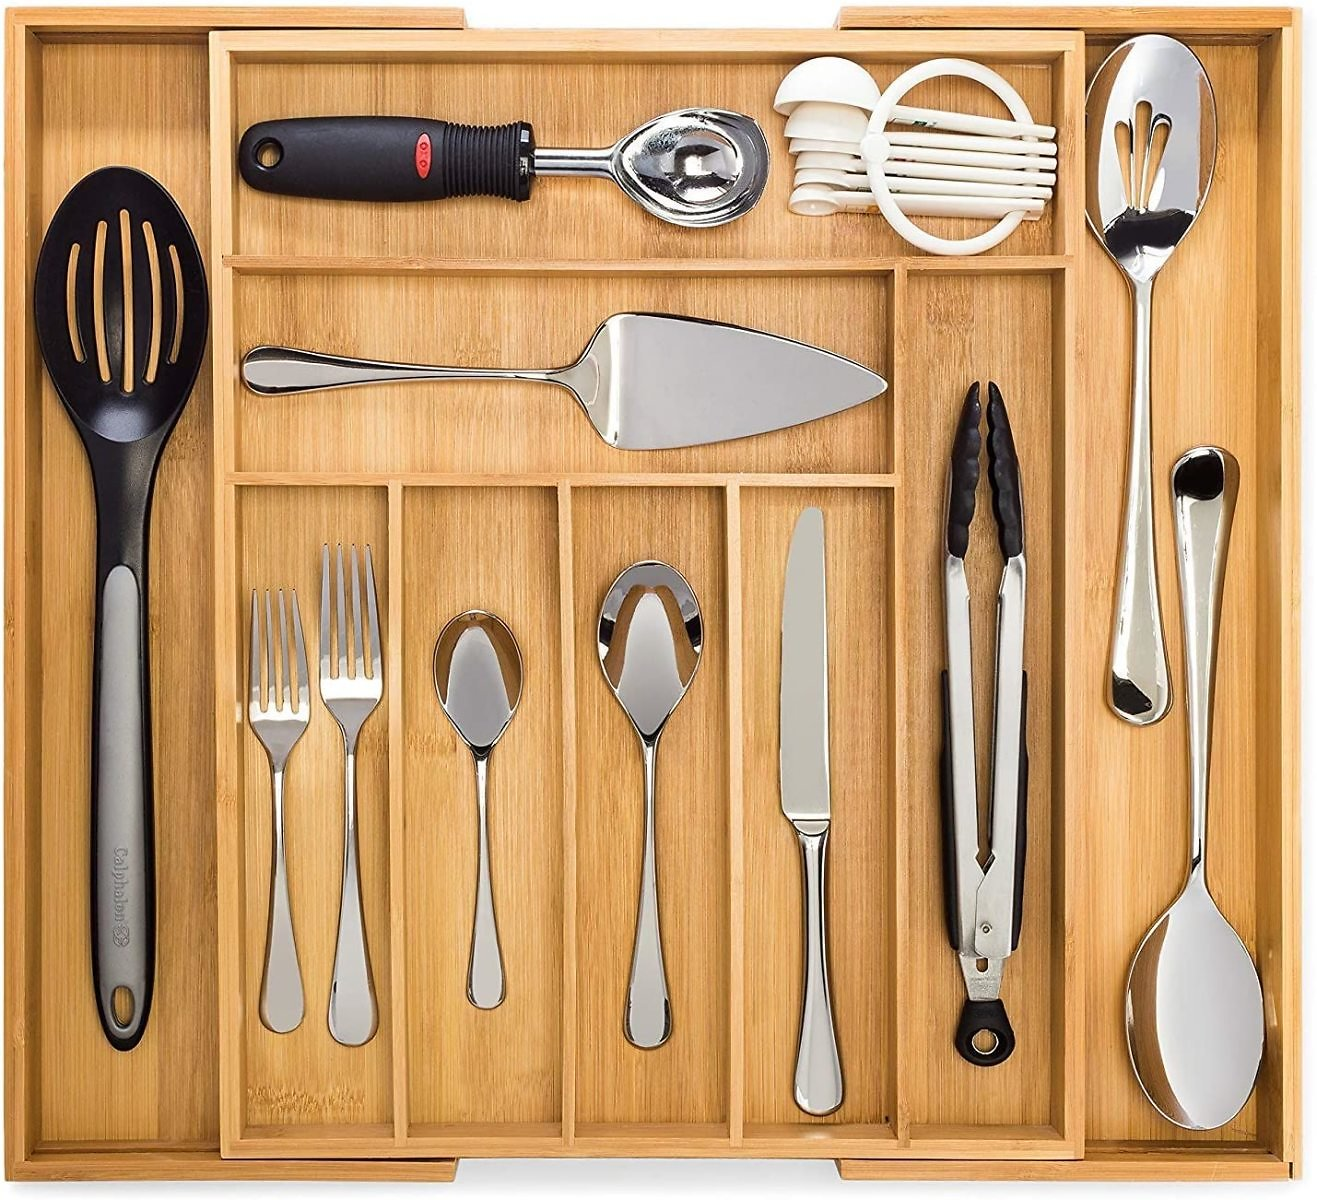 Bamboo Expandable Drawer Organizer, Premium Cutlery and Utensil Tray, 100% Pure Bamboo, Adjustable Kitchen Drawer Divider (7 Compartments Expandable)